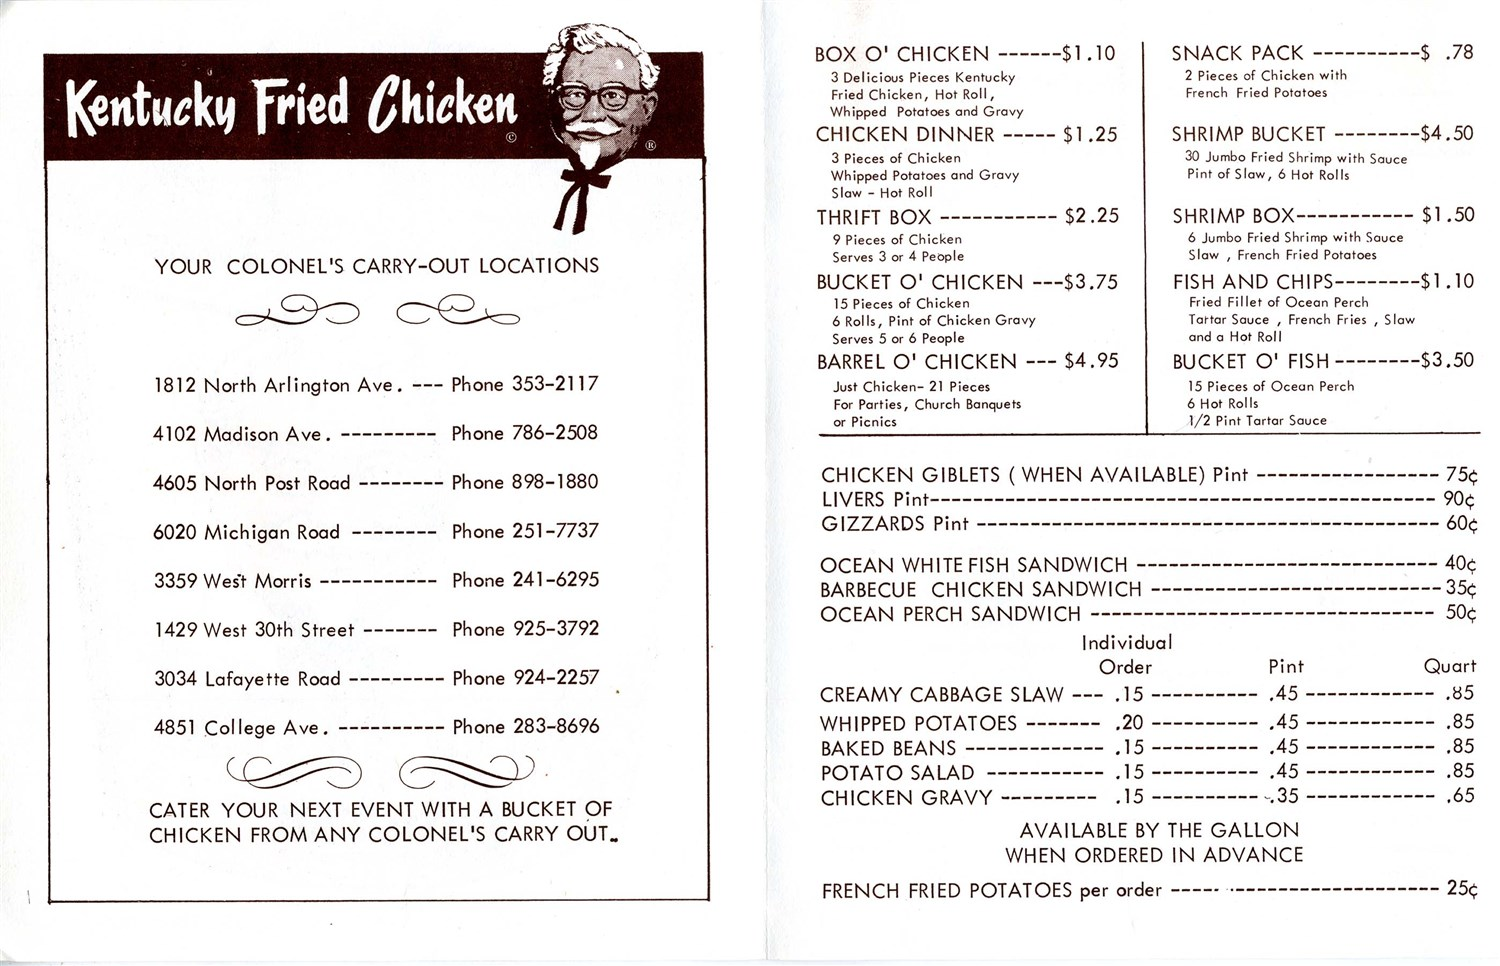 Kfc Fried Chicken Menu - photo#18